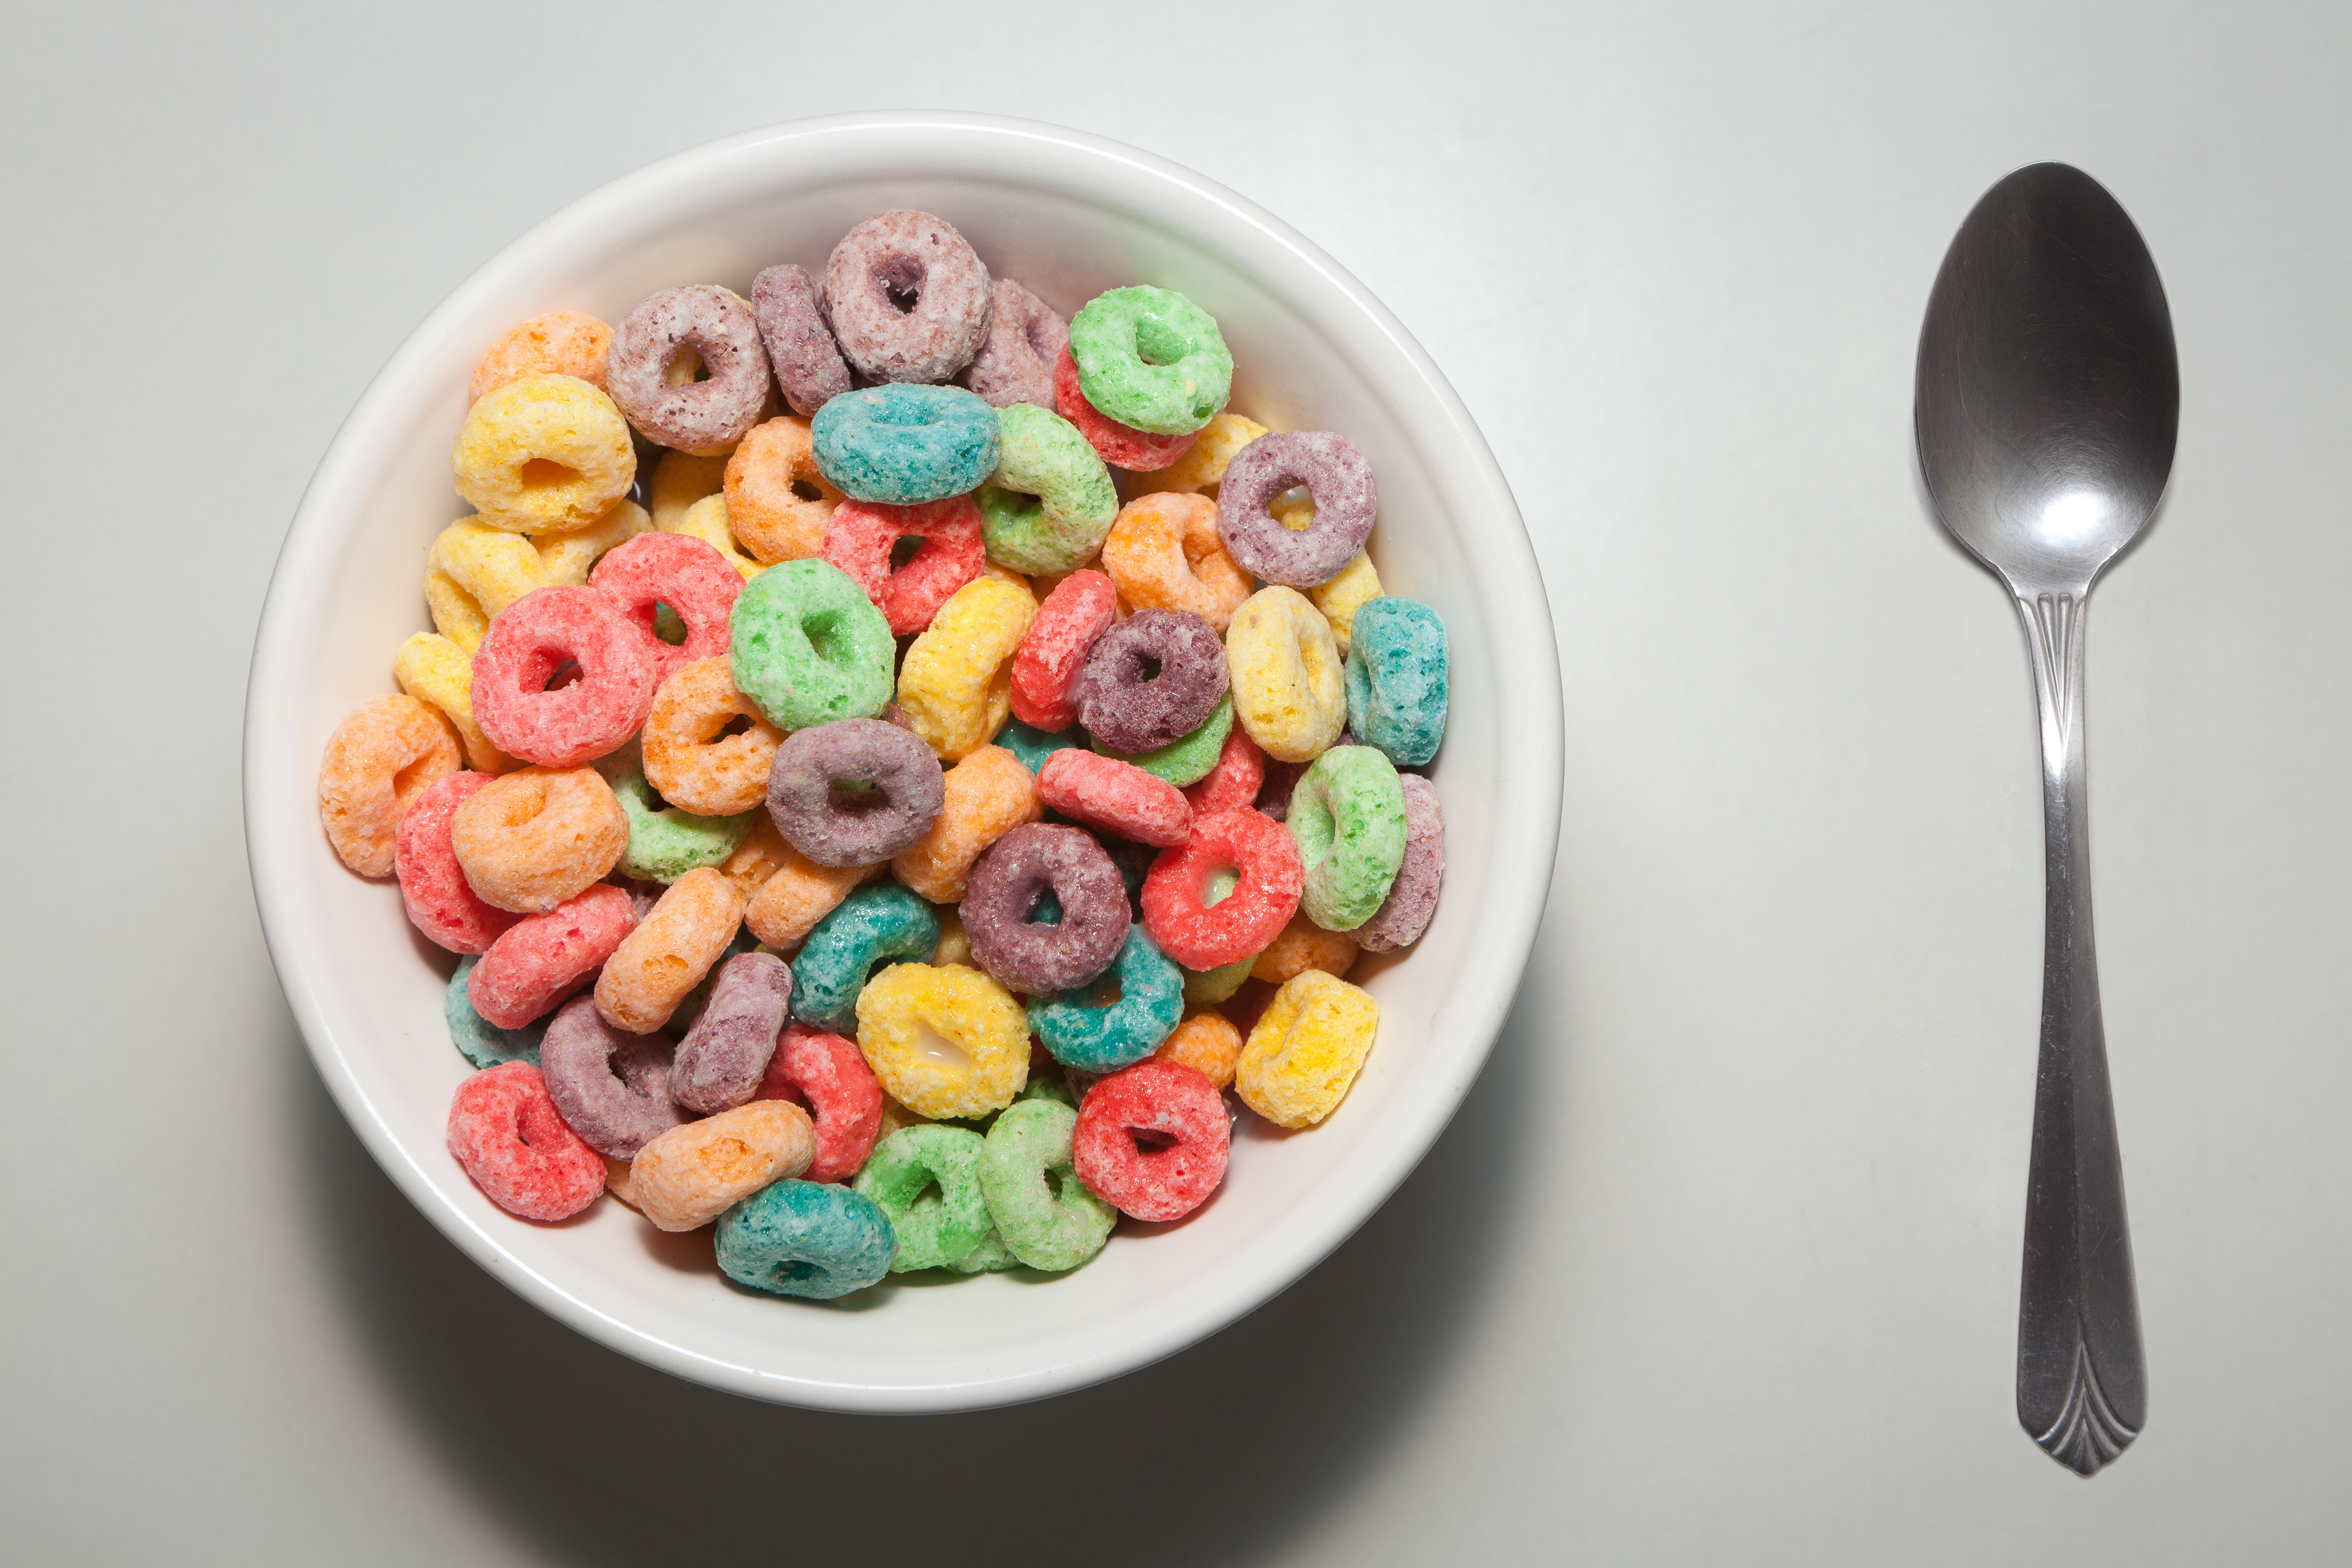 worst-grain-sugary-cereal